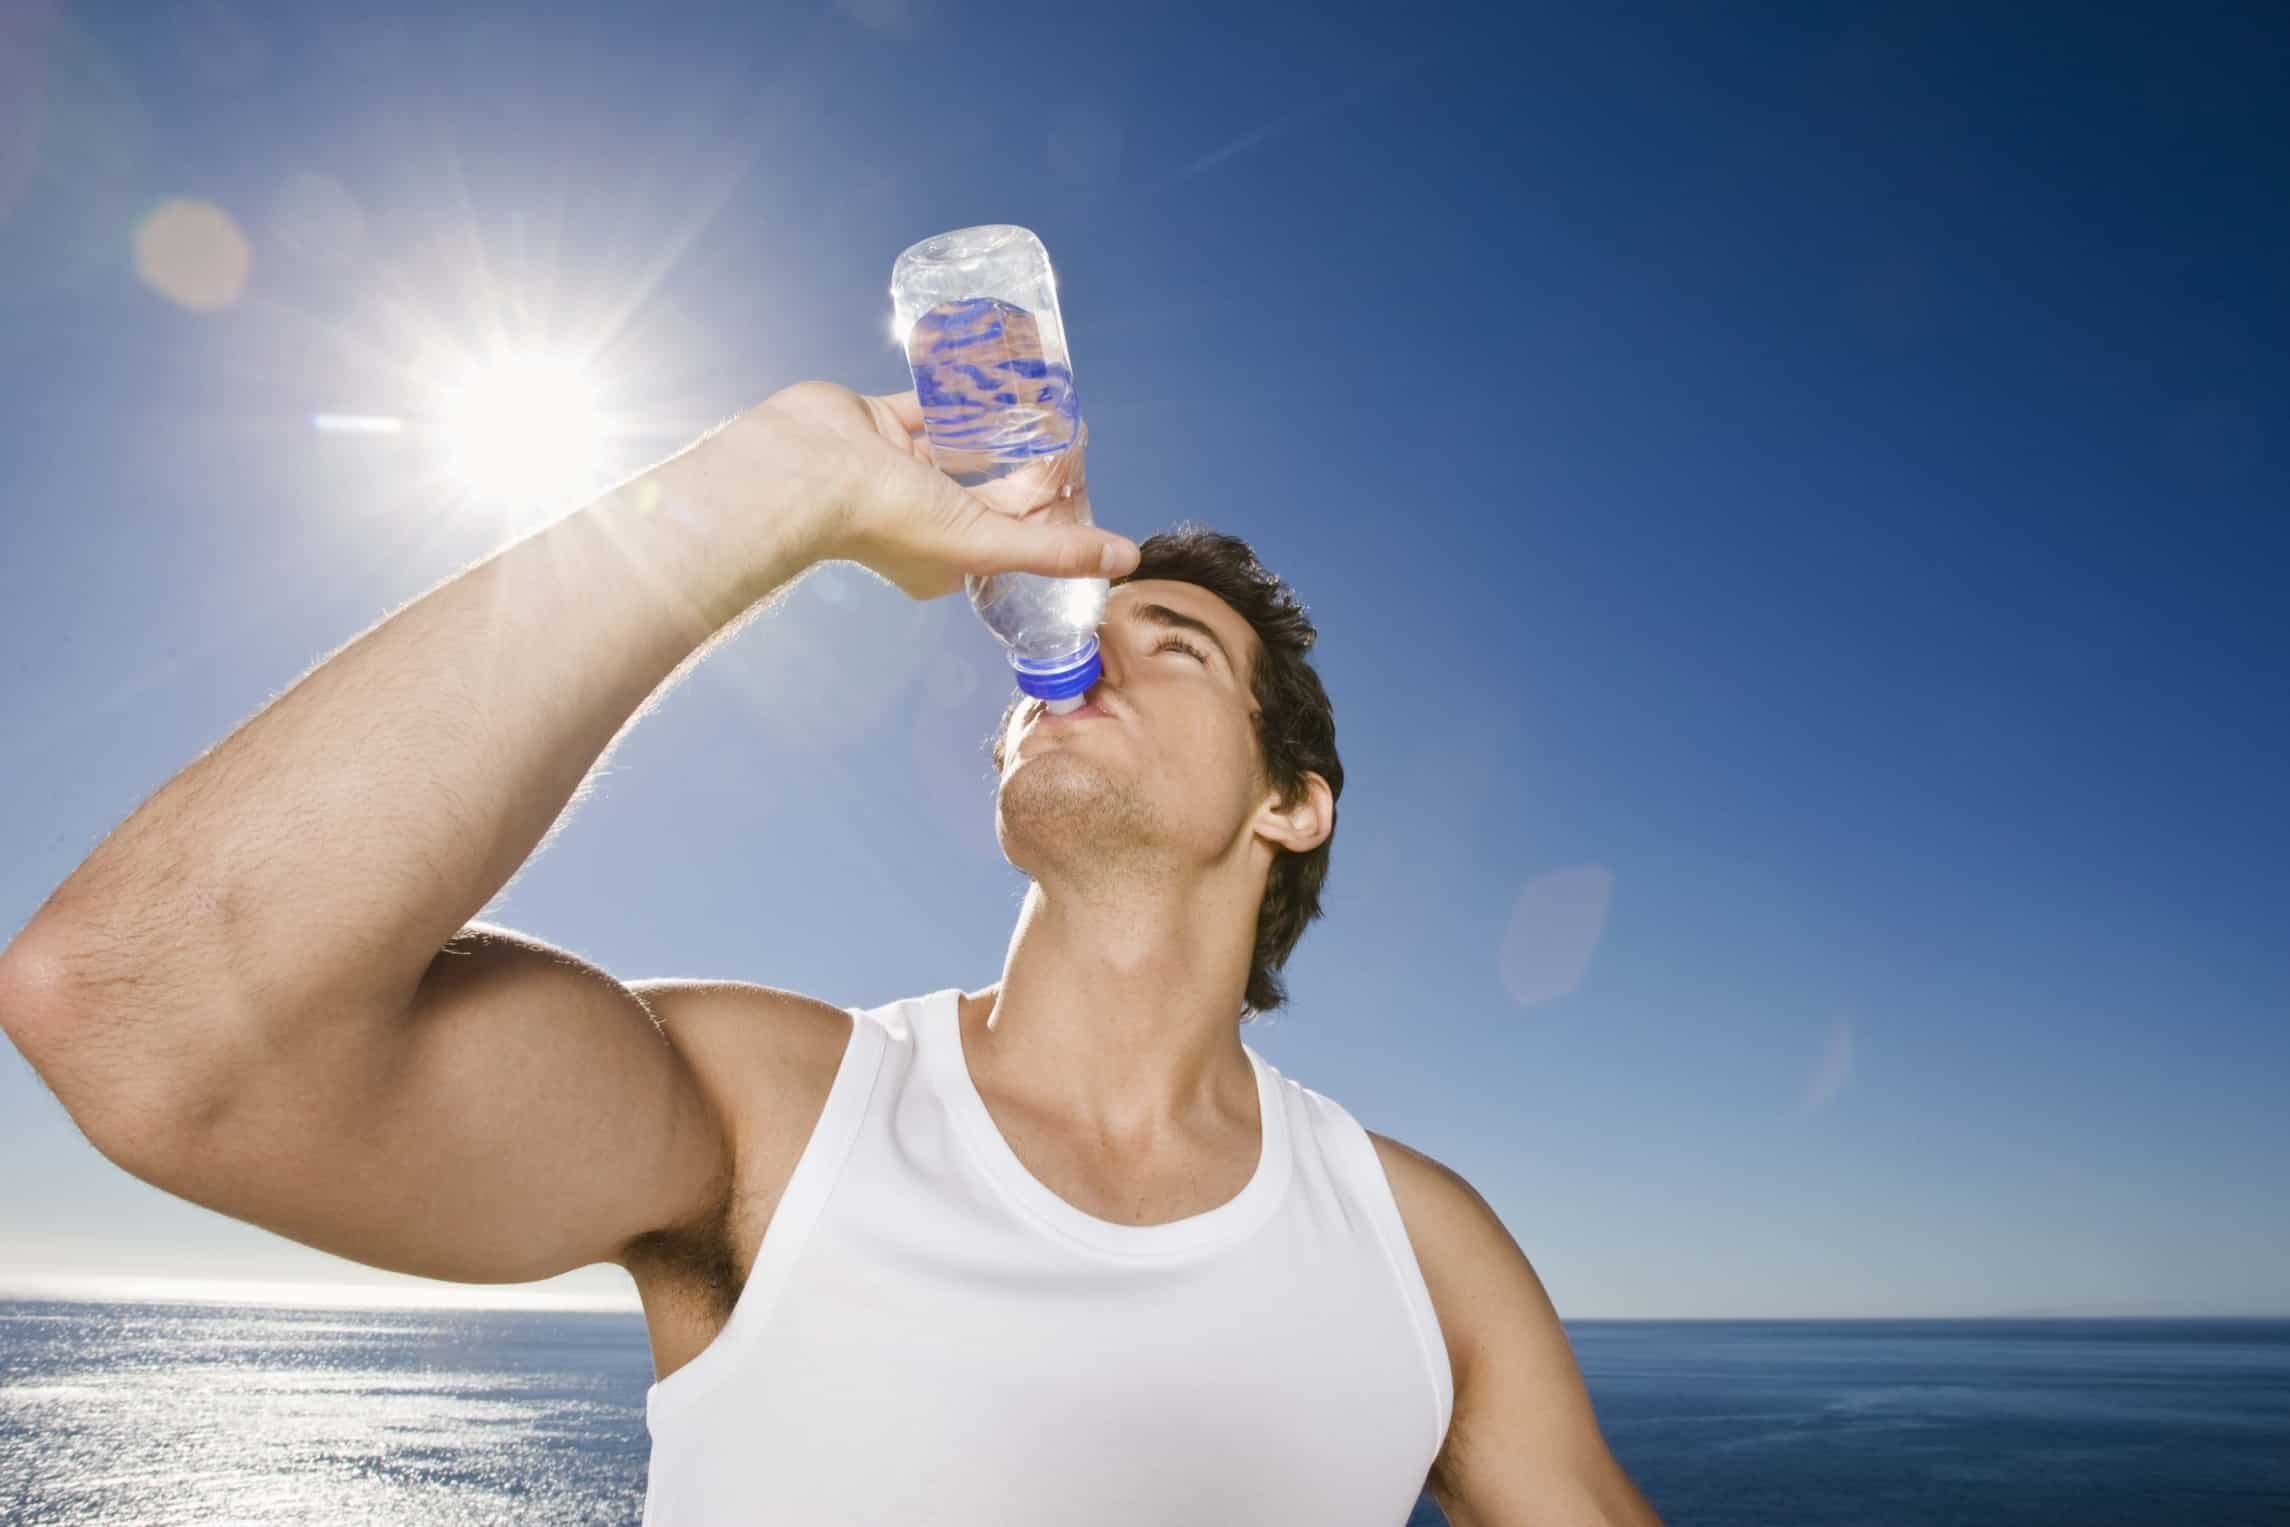 Much Water Consumption Enhances Weight Loss